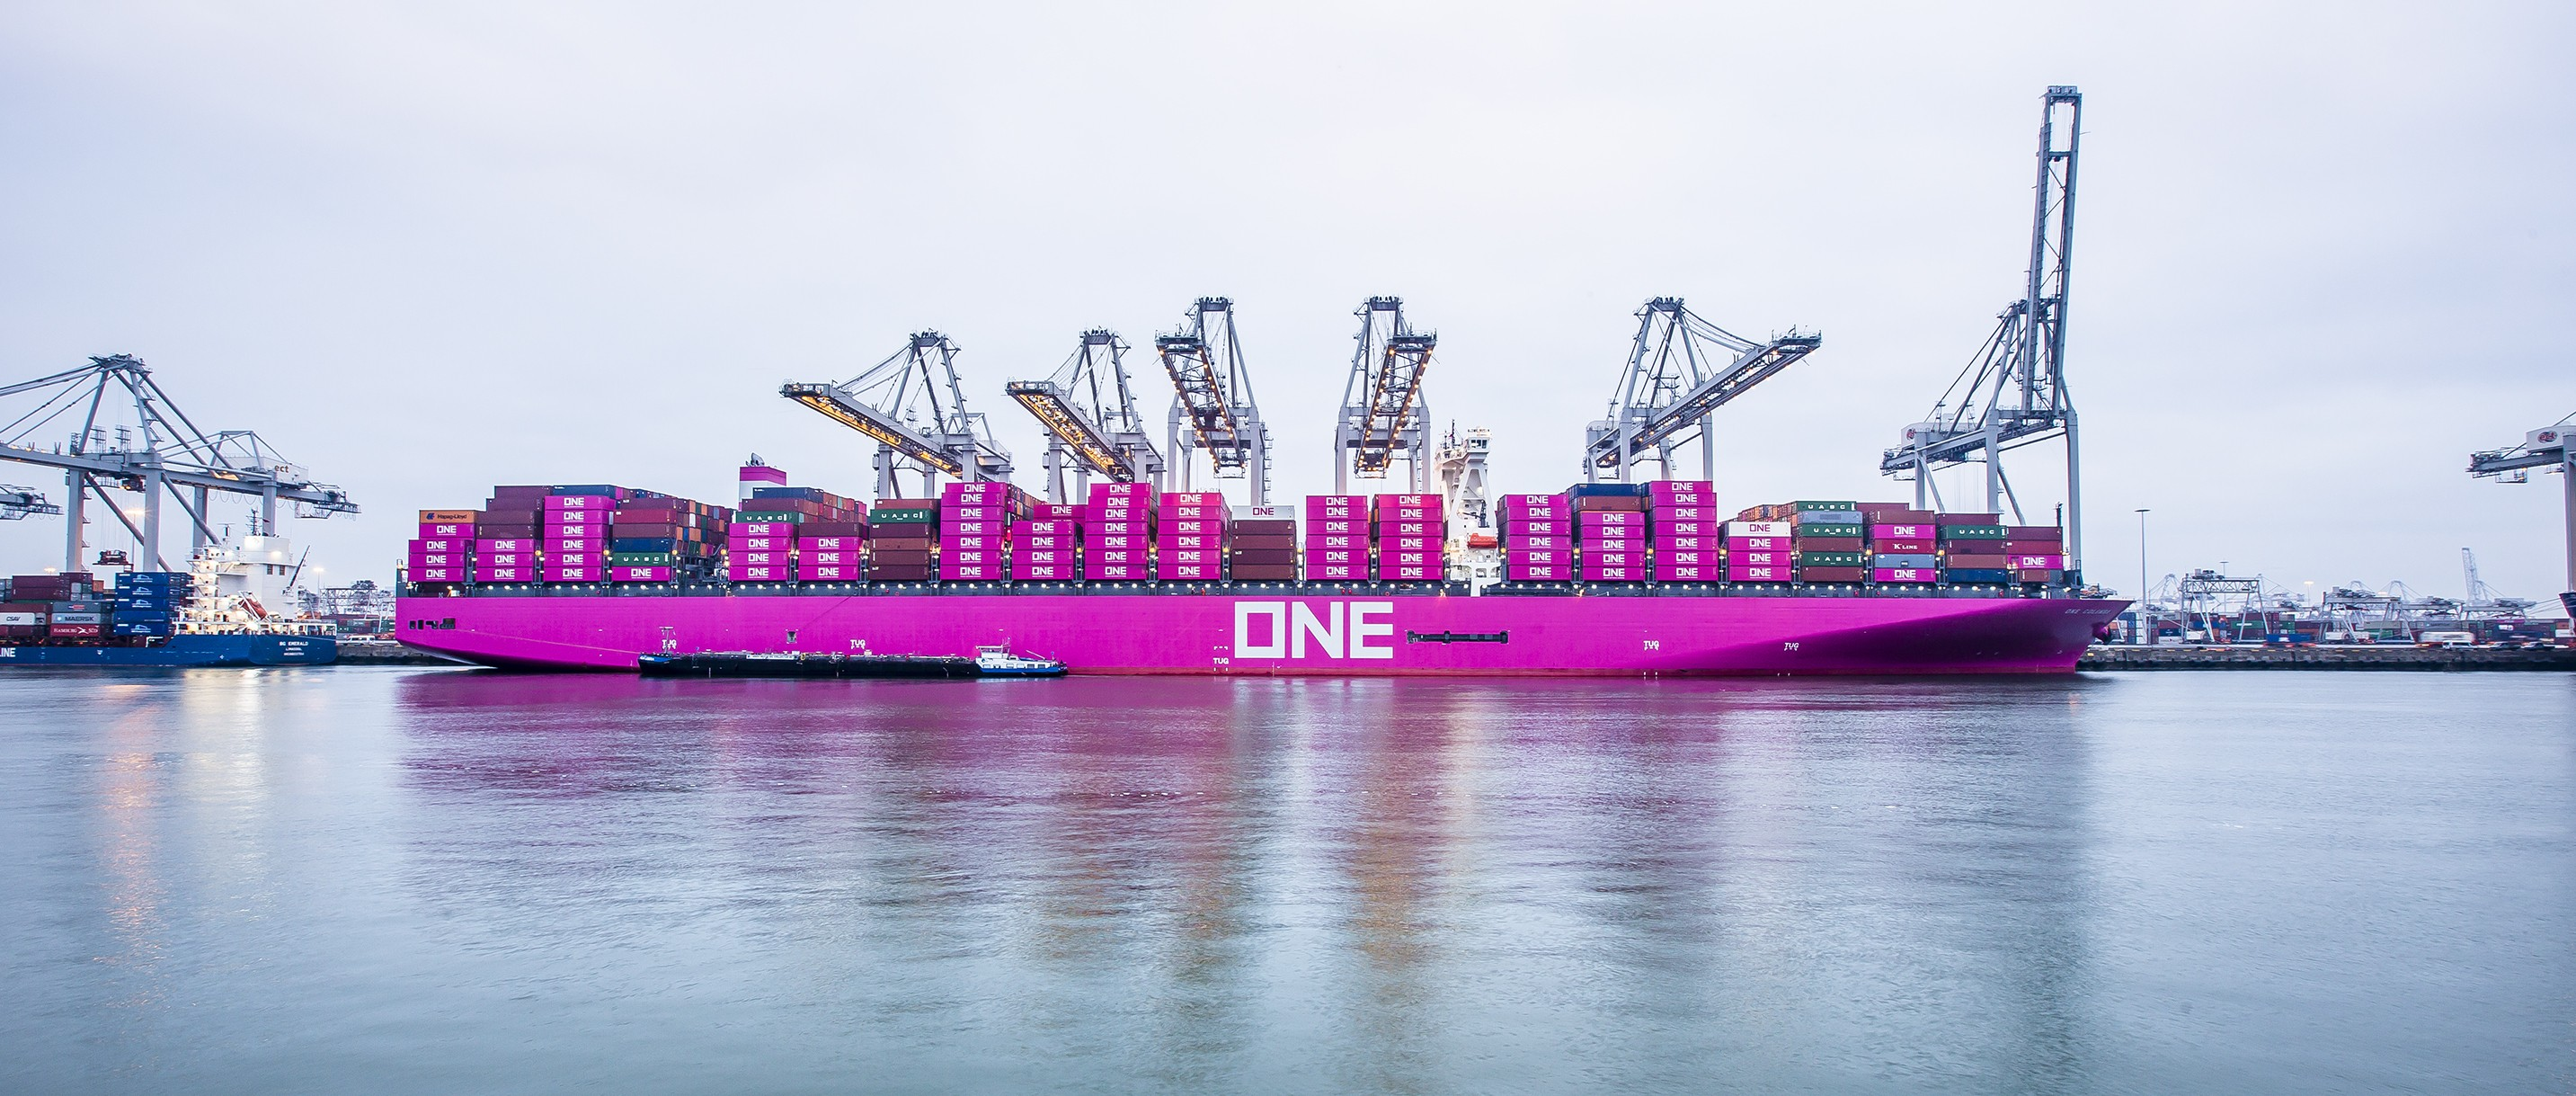 Ocean Network Express | LinkedIn